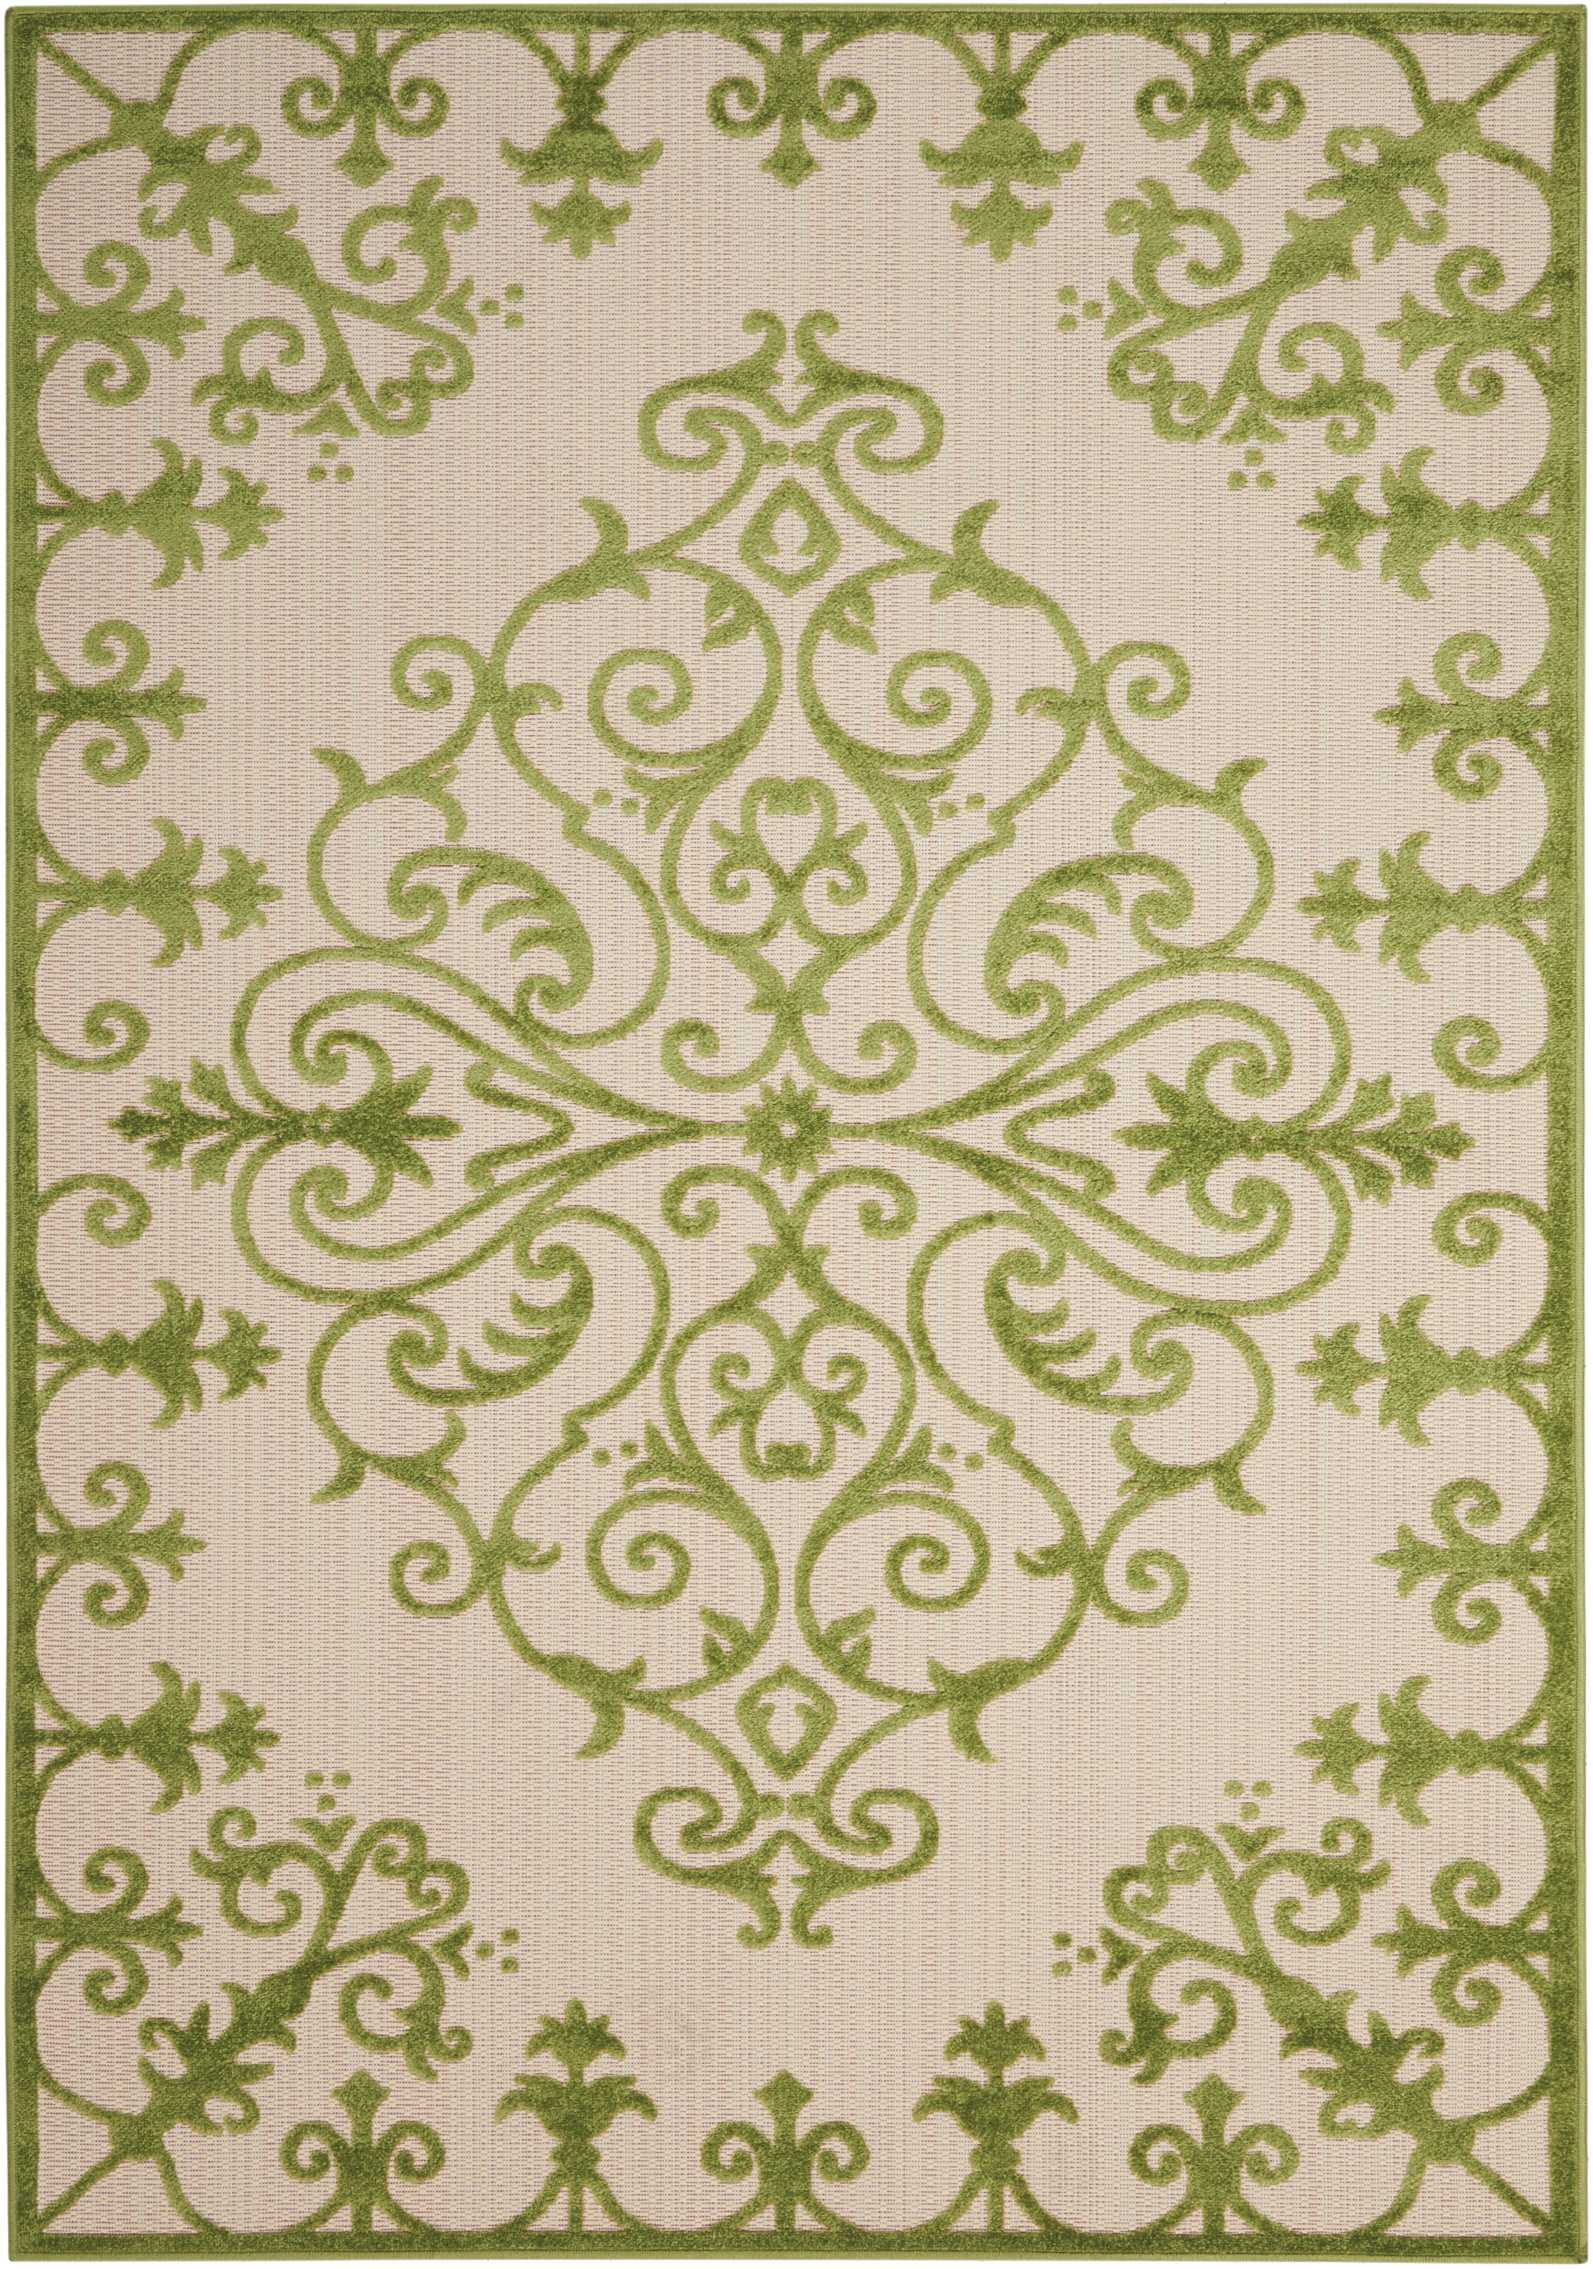 Nourison Aloha 8'X11' Green And White Oversized Textured Indoor-Outdoor Rug